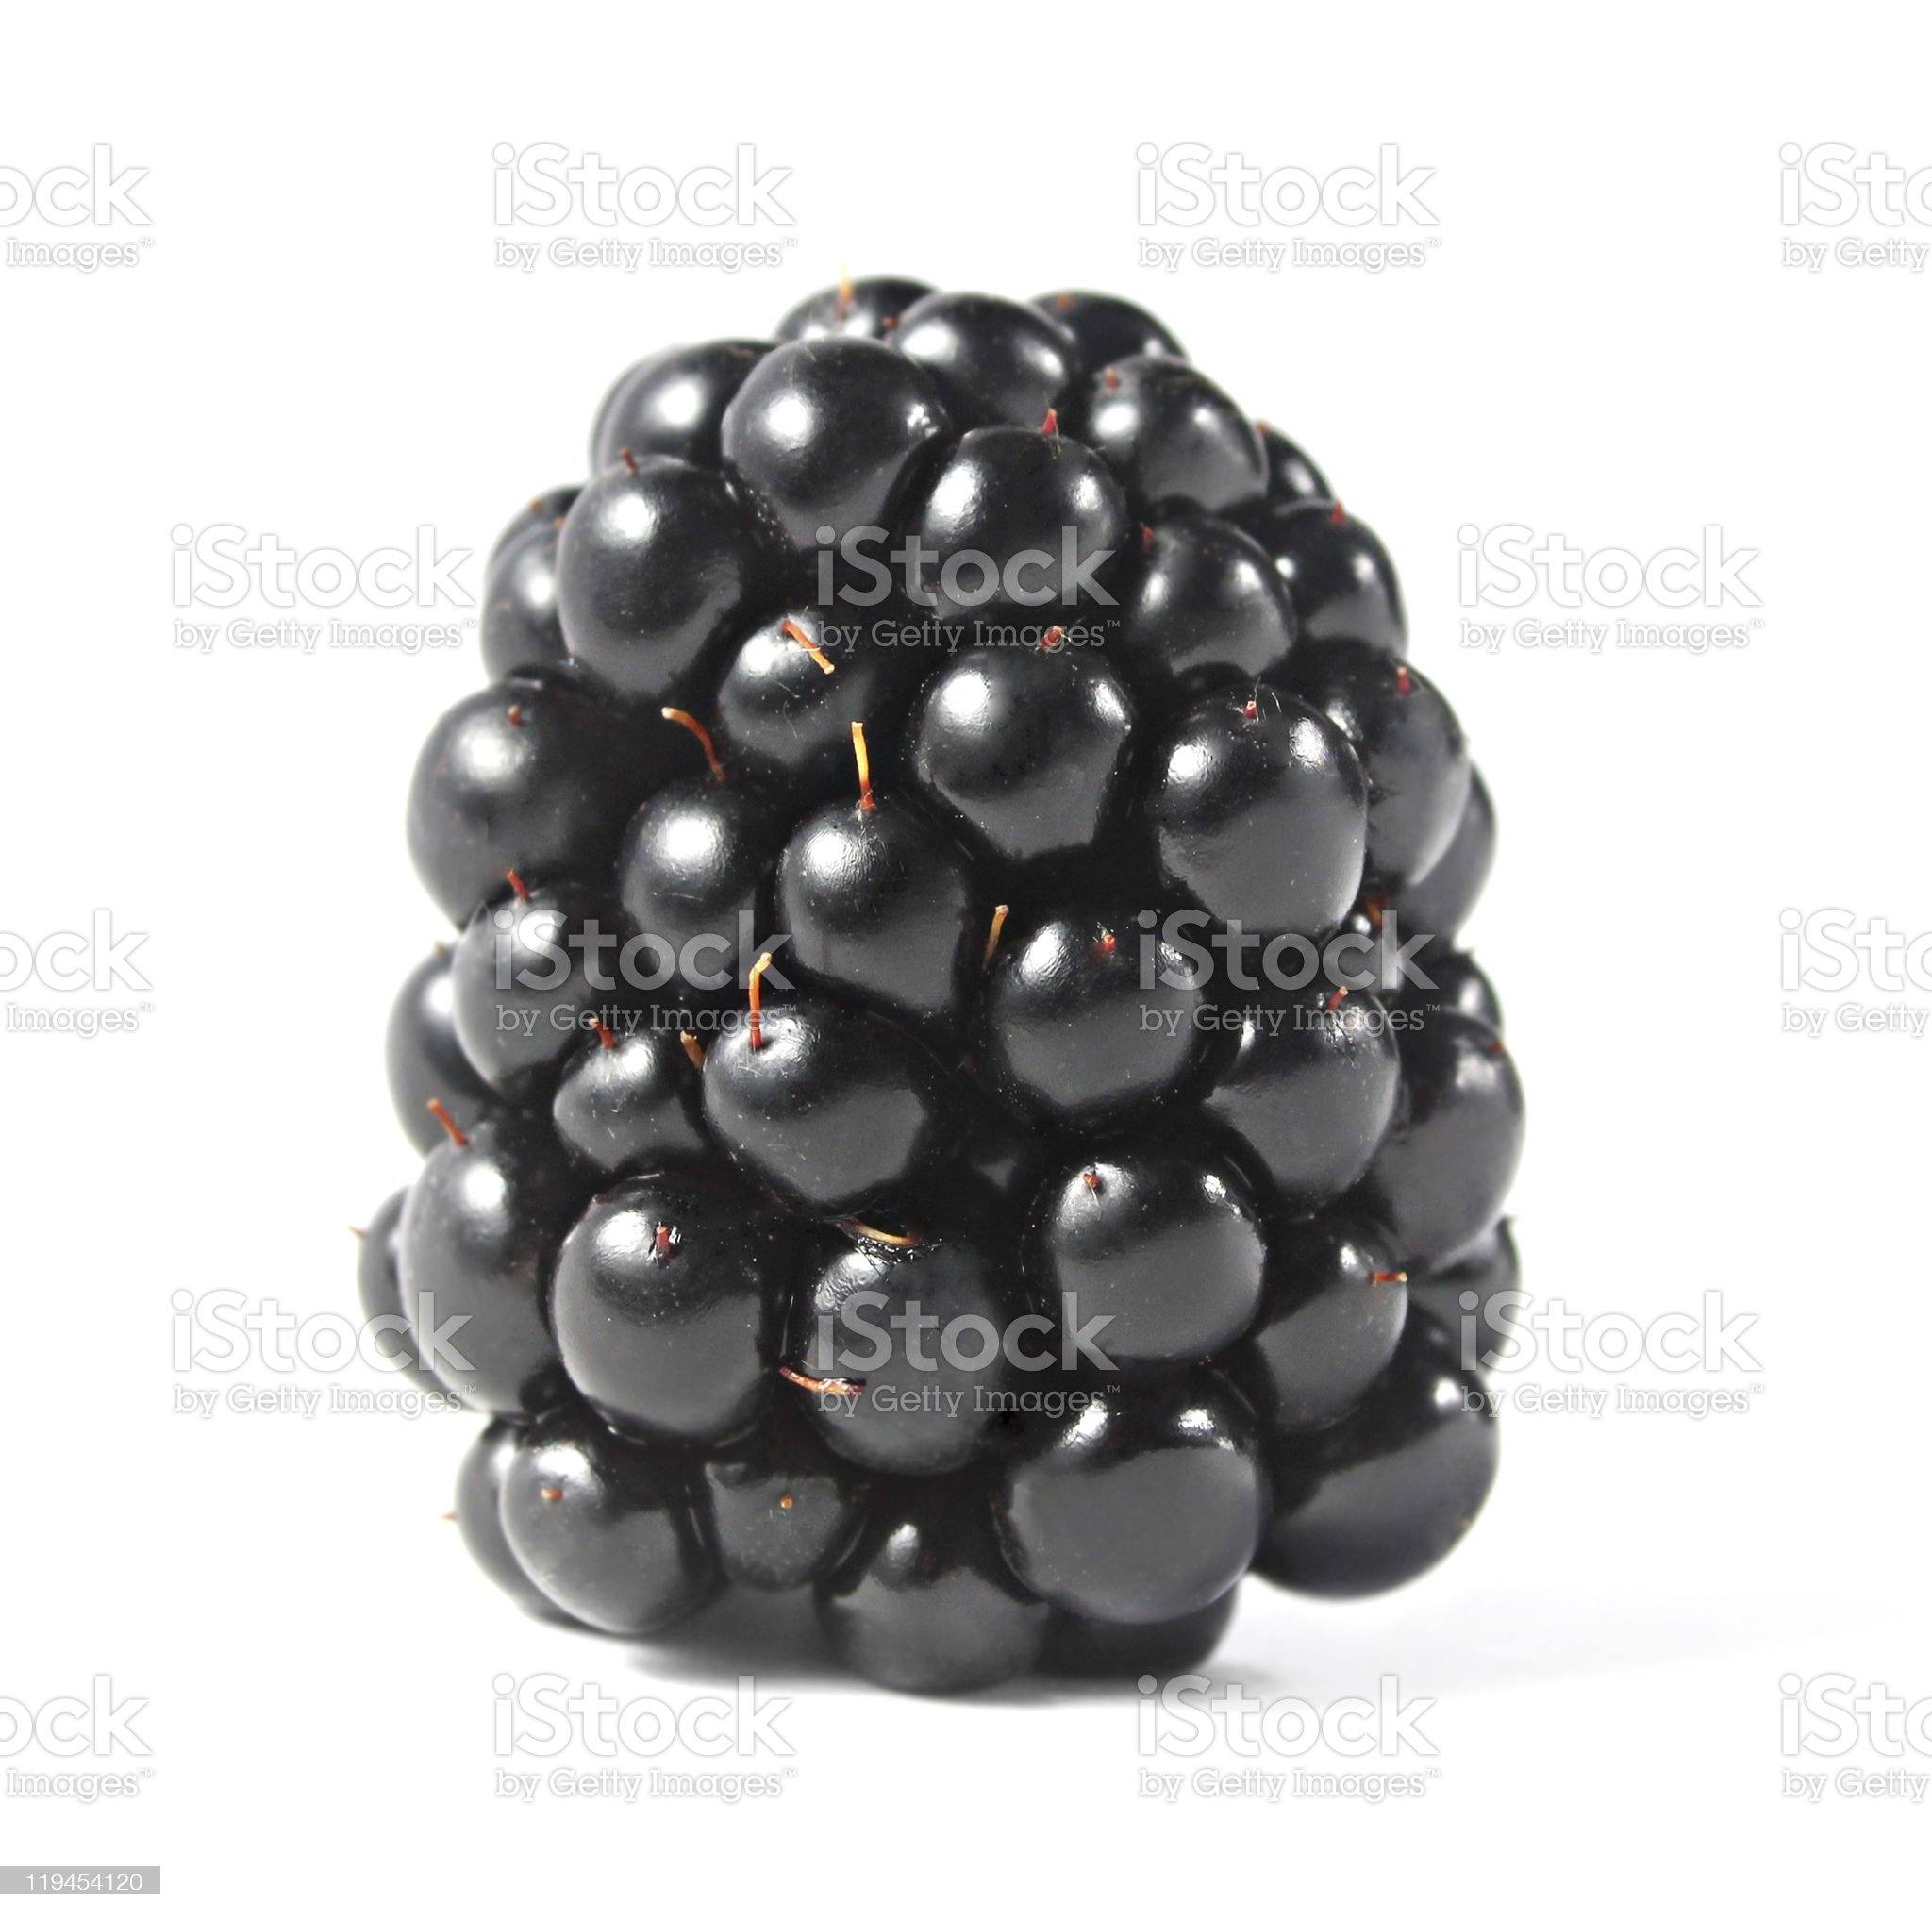 Blackberry isolated royalty-free stock photo